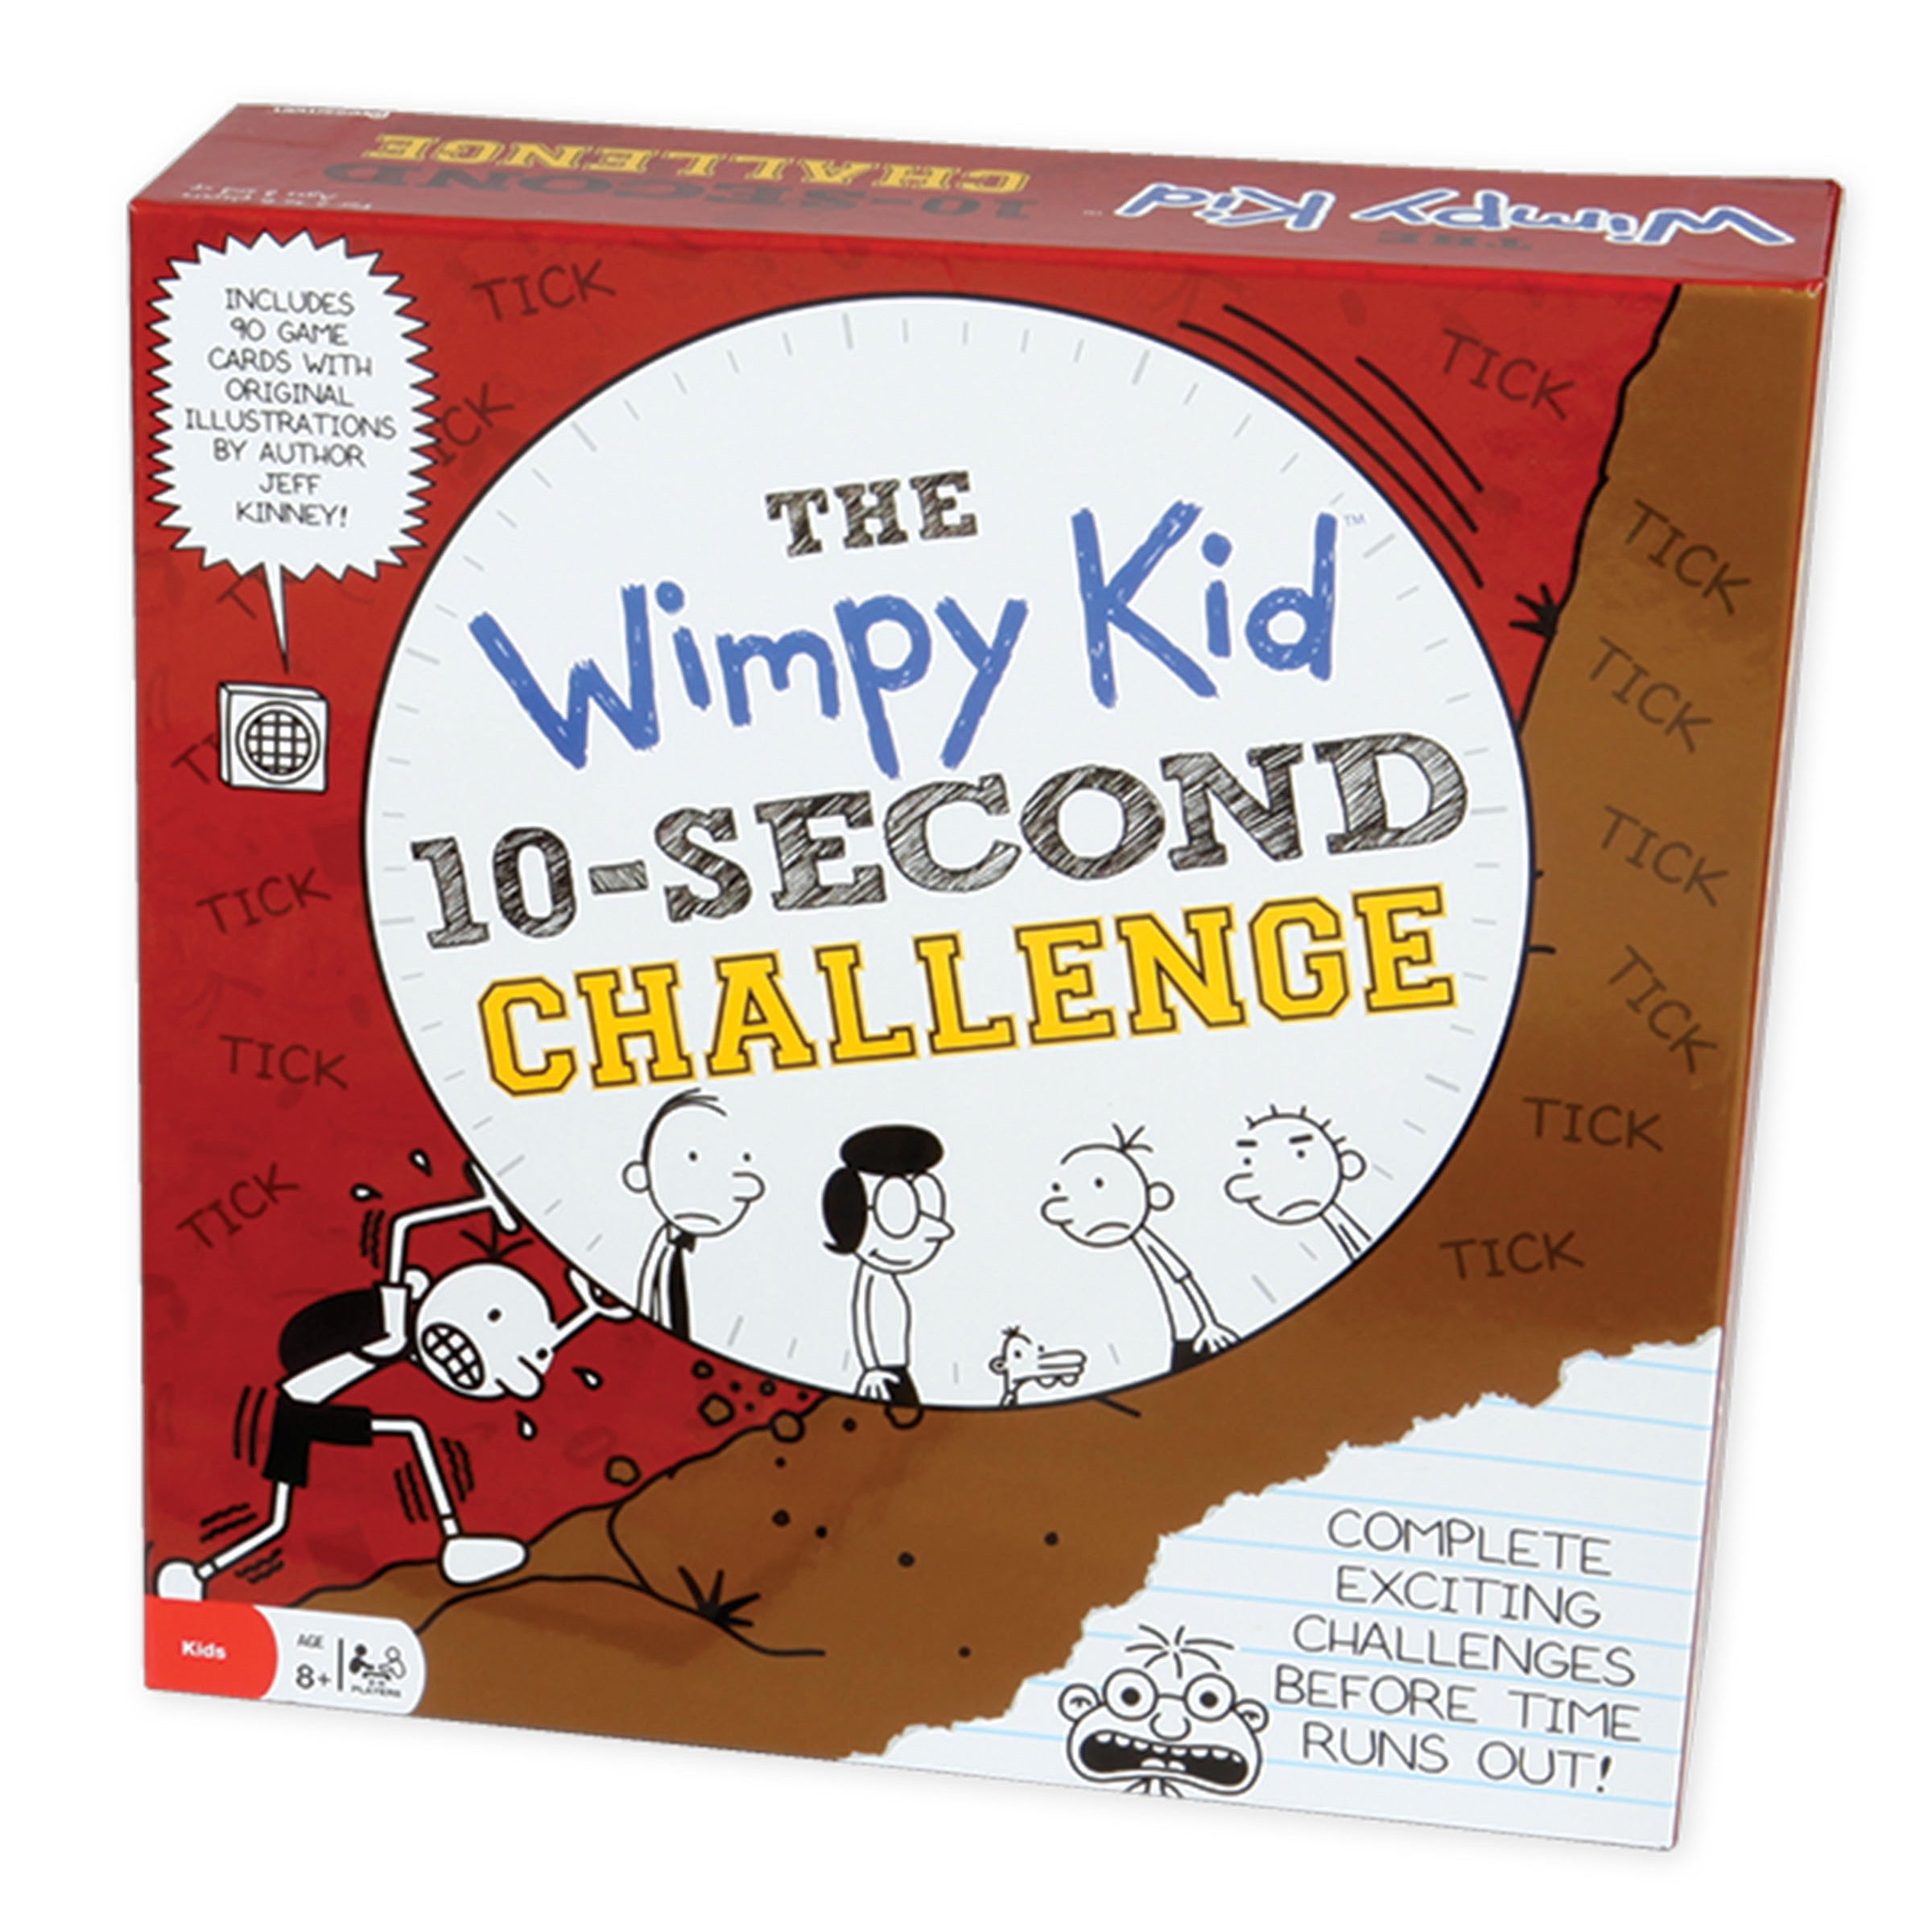 Pressman Toy Diary of a Wimpy Kid 10-Second Challenge Gam...